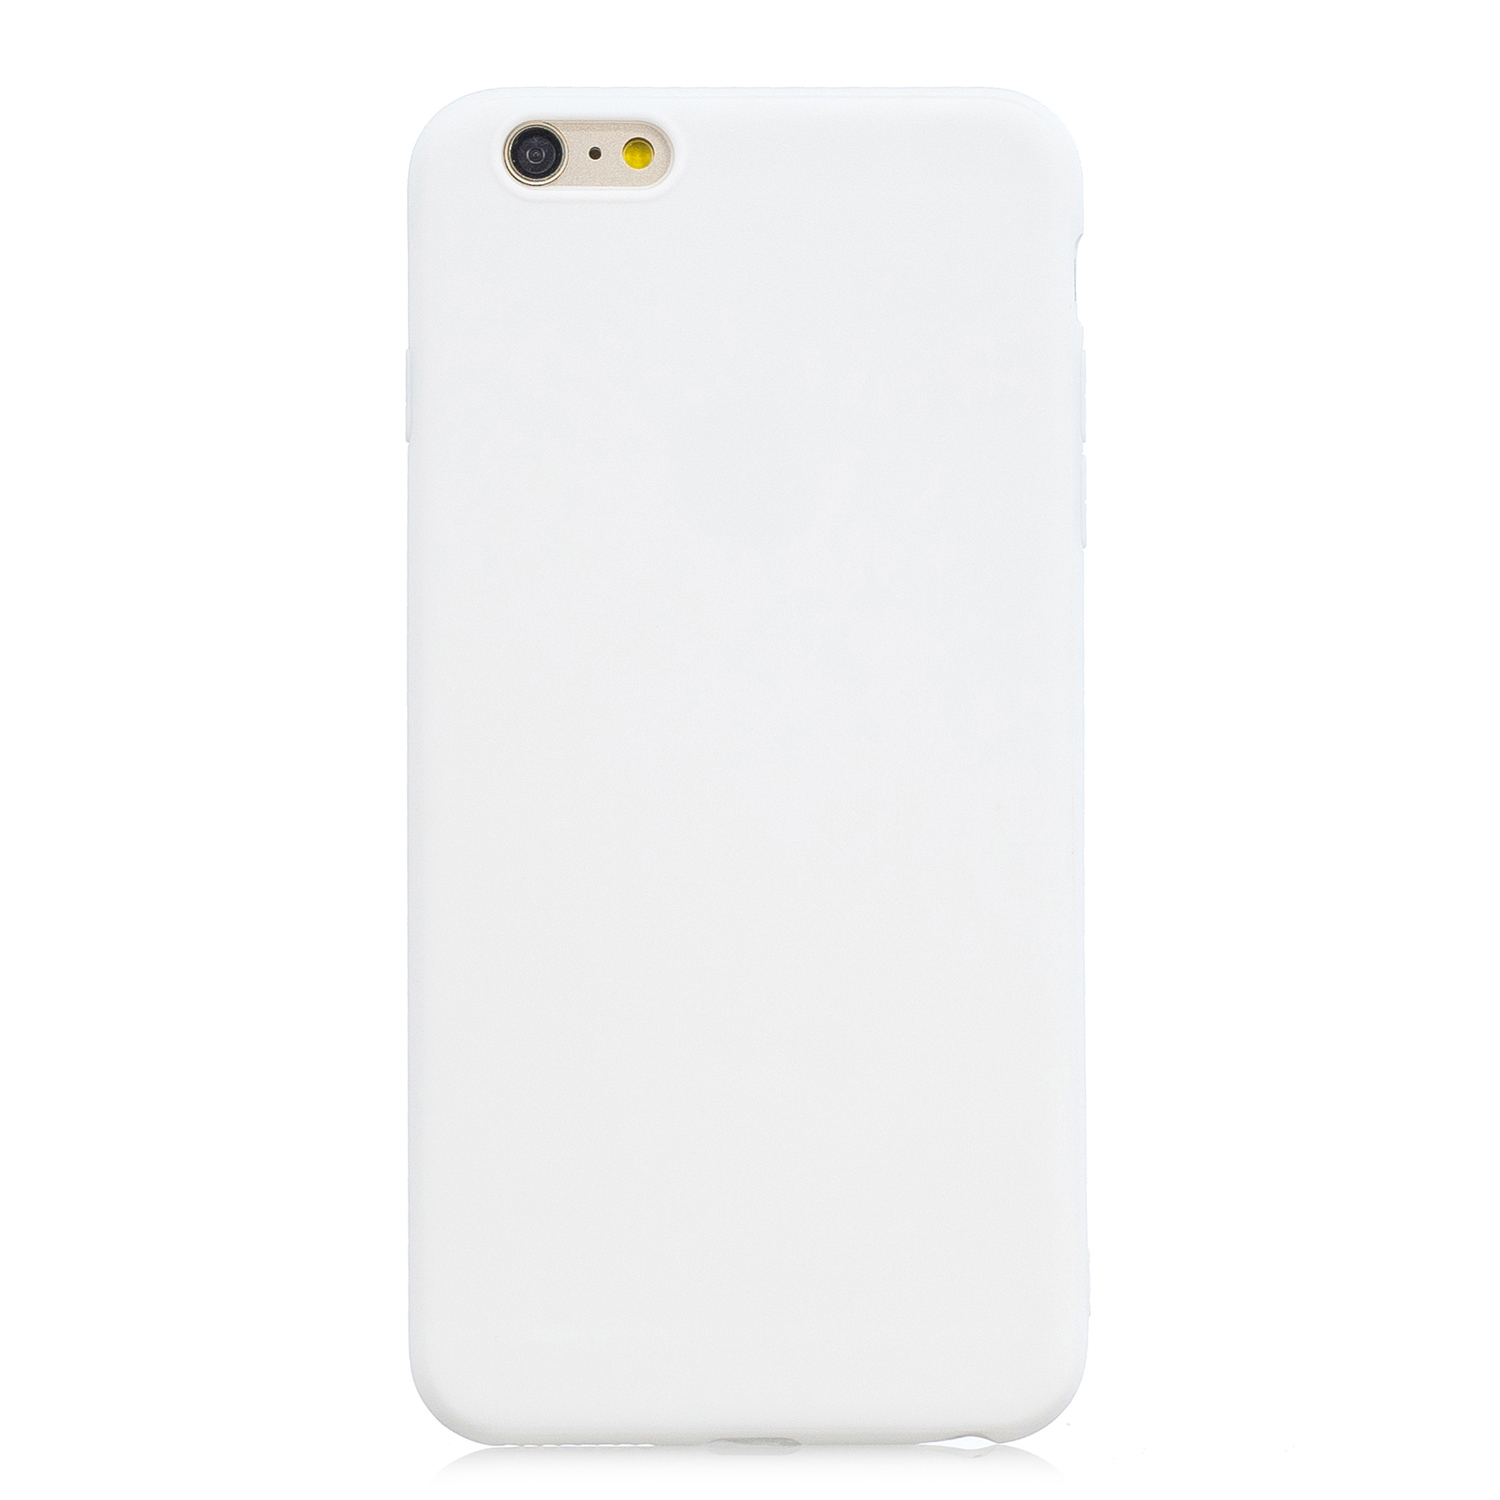 for iPhone 6/6S Lovely Candy Color Matte TPU Anti-scratch Non-slip Protective Cover Back Case white